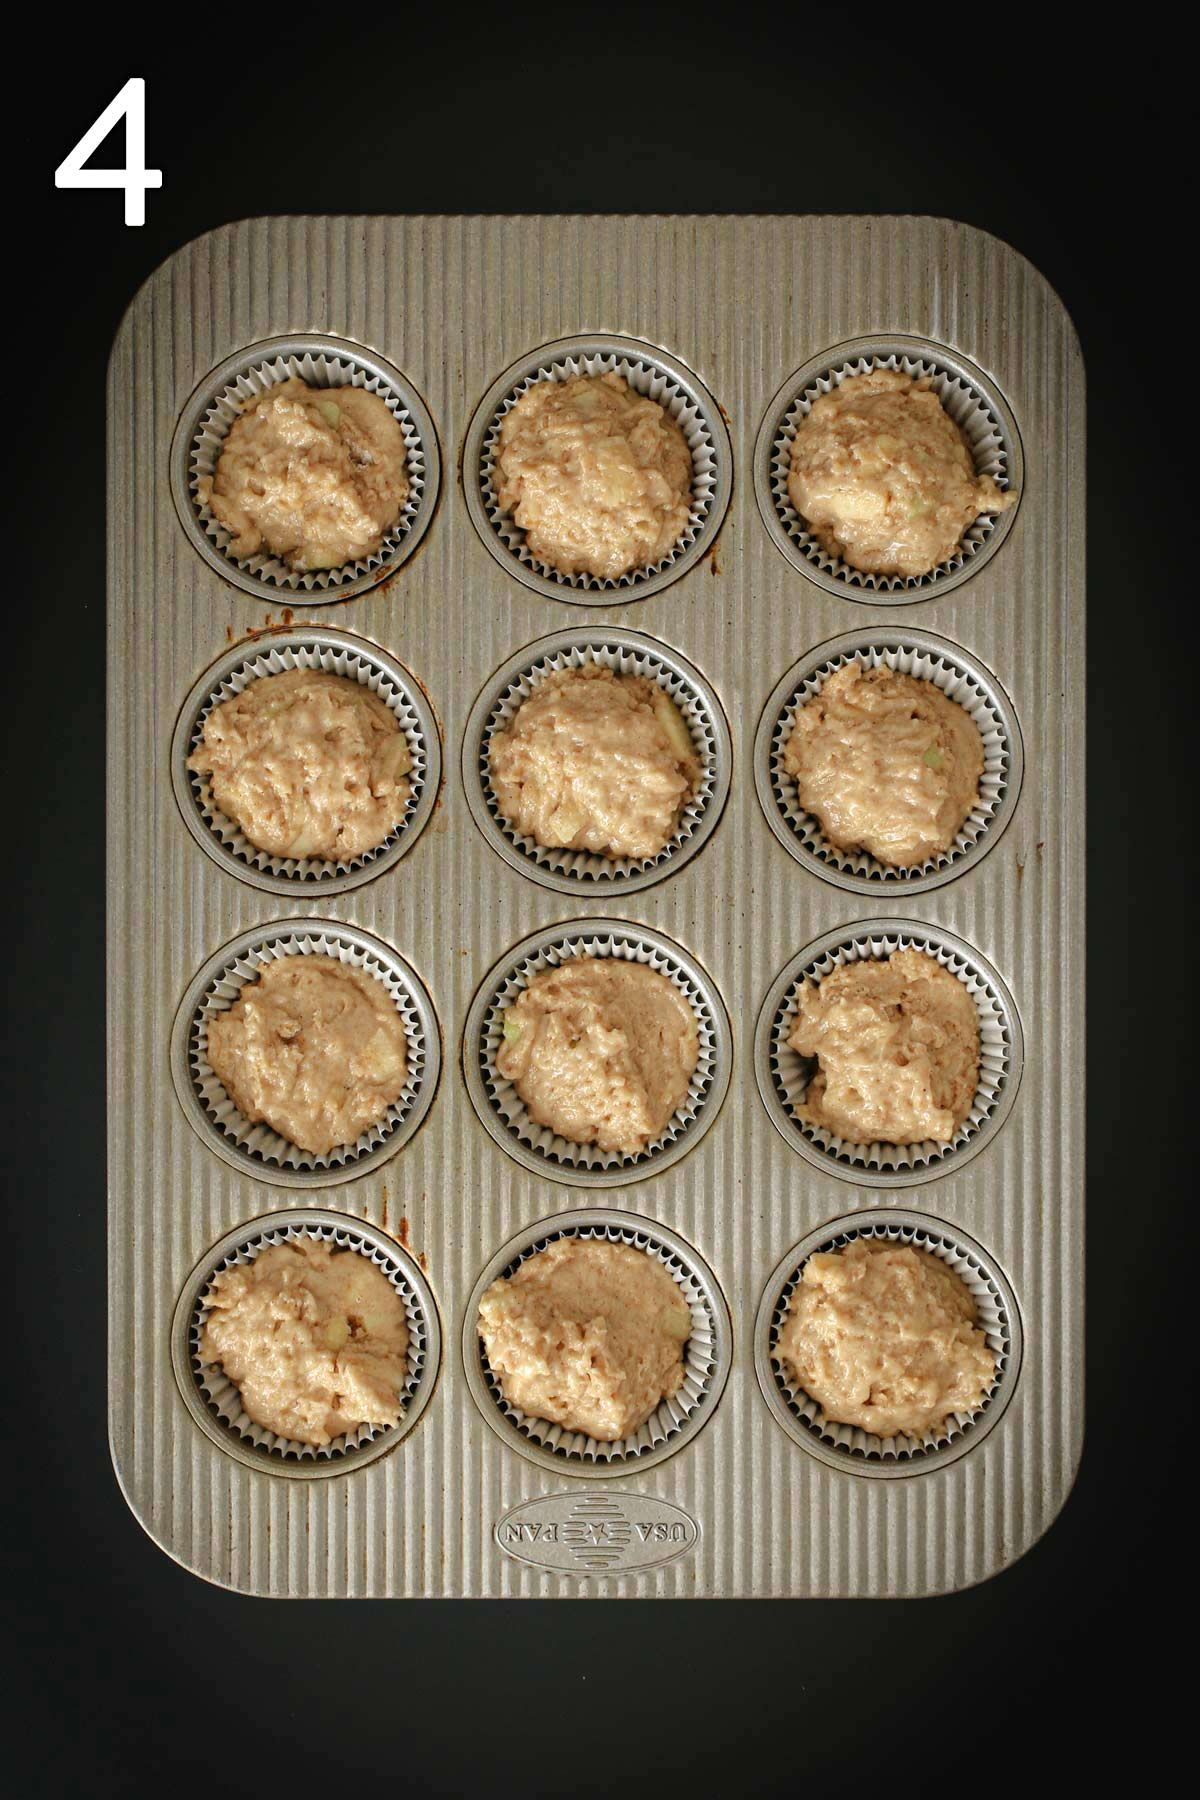 muffin batter scooped into paper lined muffin tin on black table.